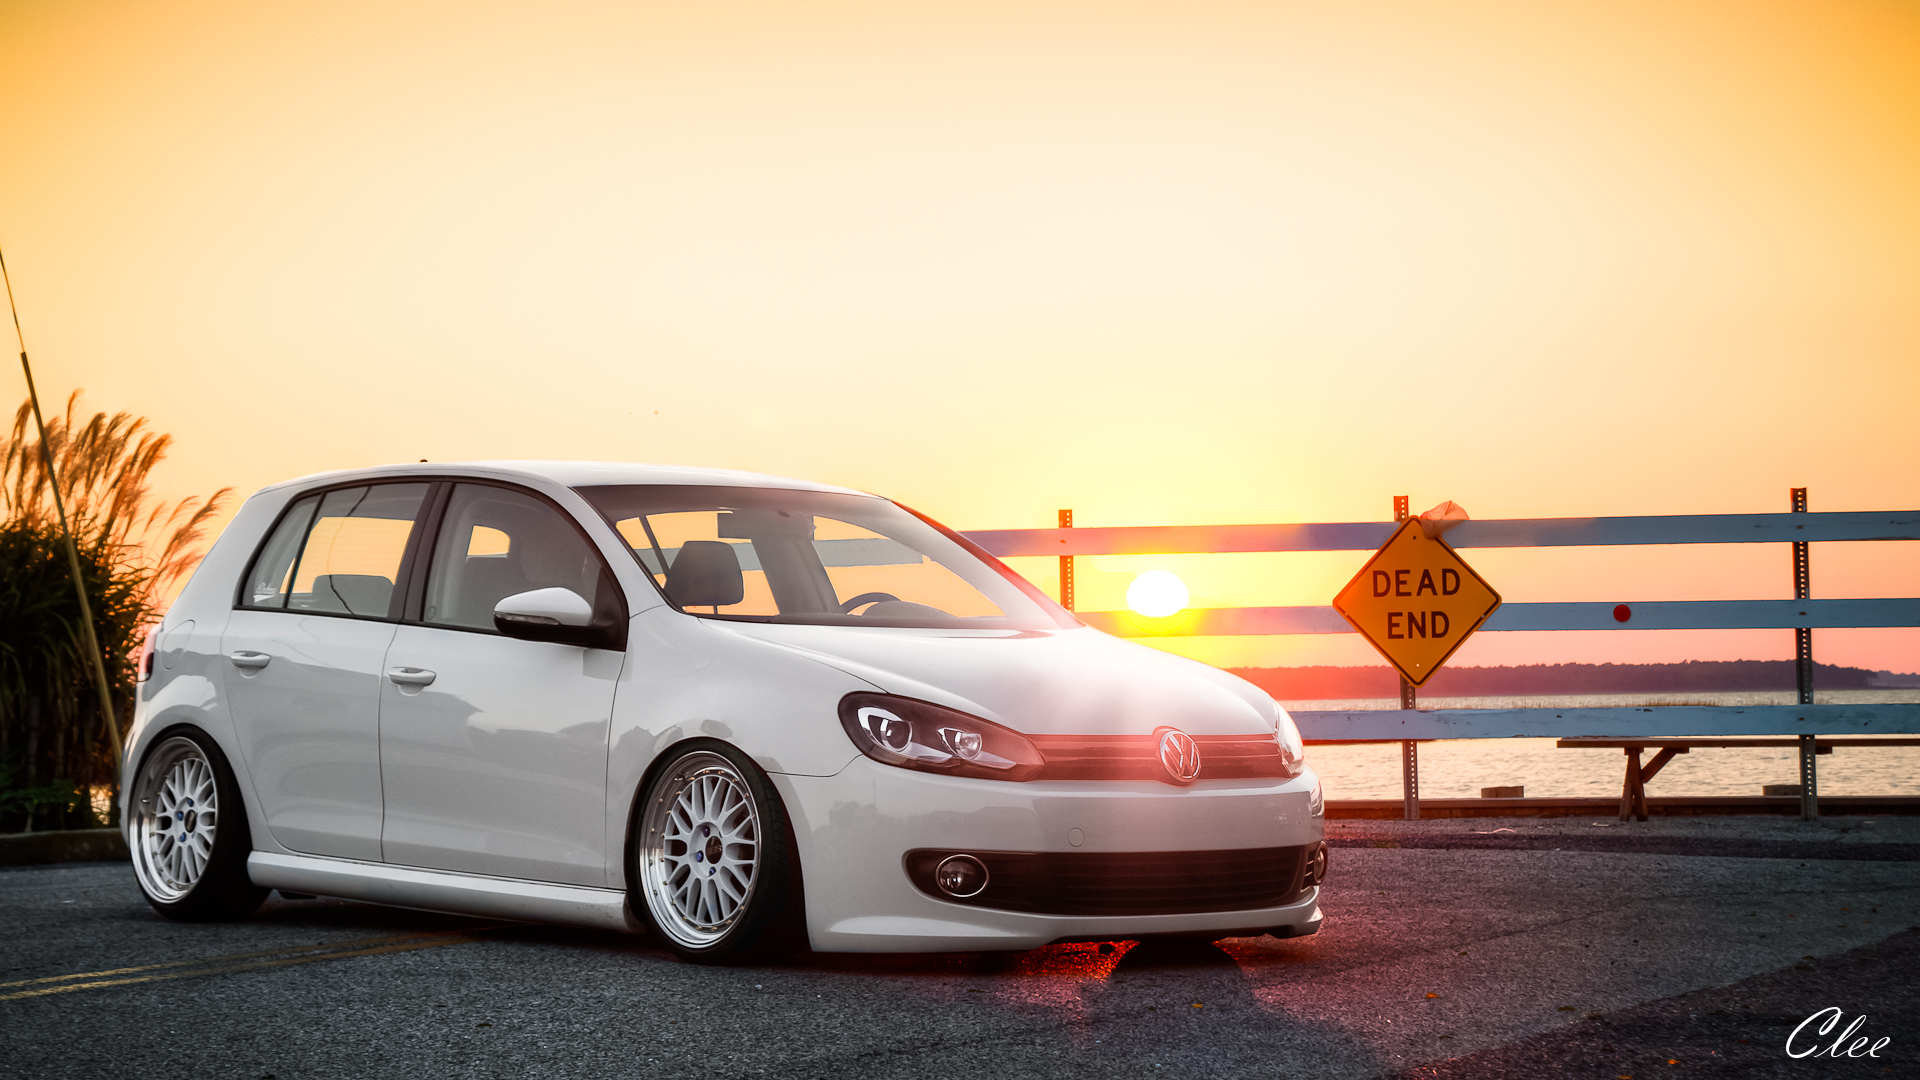 Volkswagen Golf Full HD Wallpaper 1920x1080